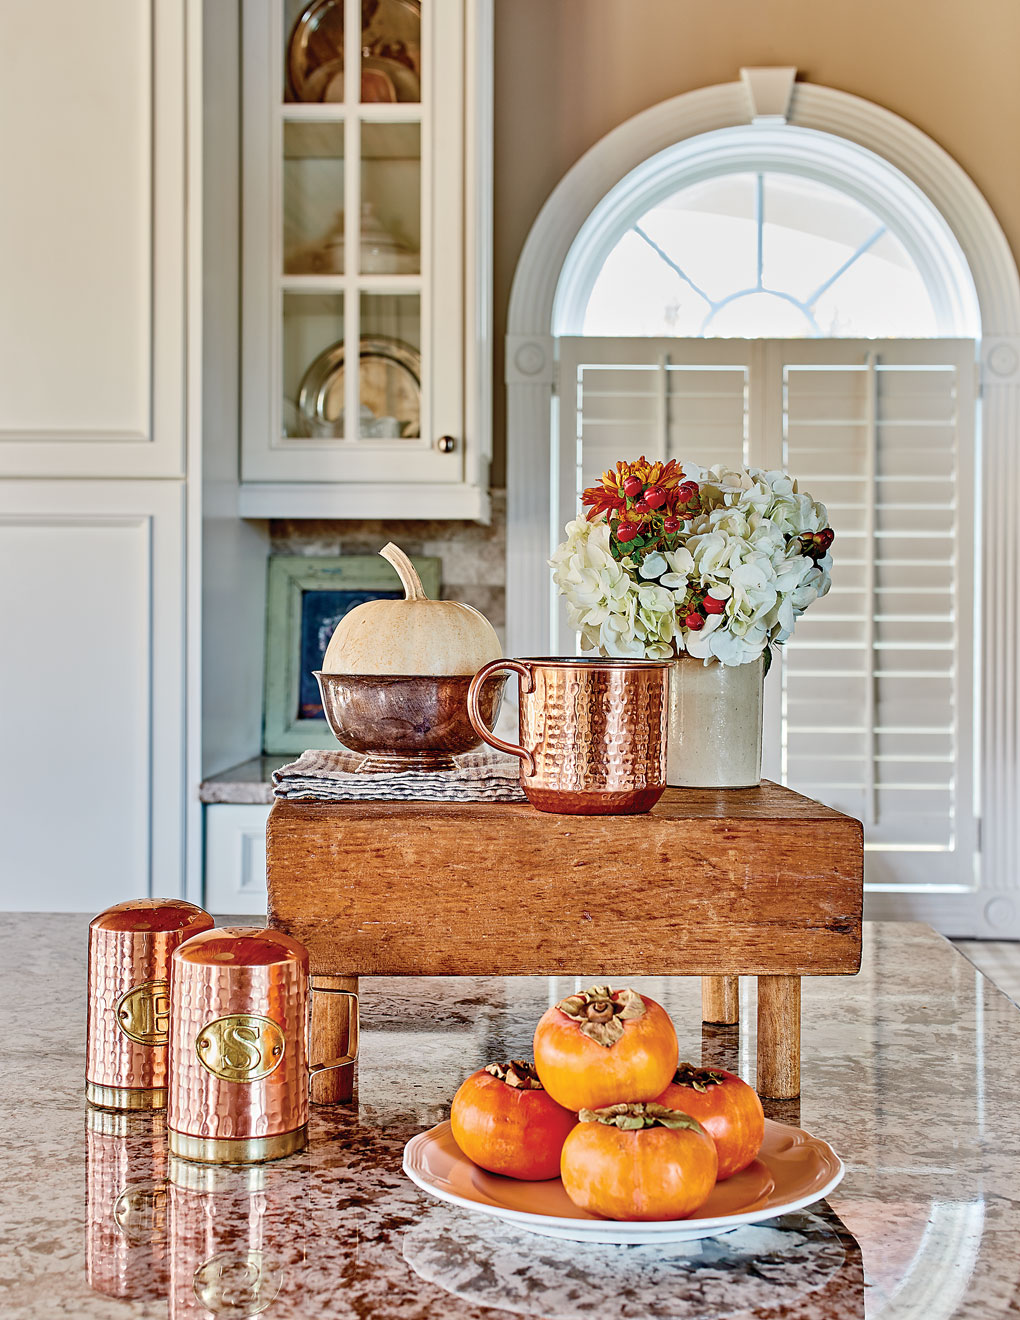 Kitchen view of a granite countertop covered with wooden butcher block display and copper accents alongside a plate of bright orange persimmons.